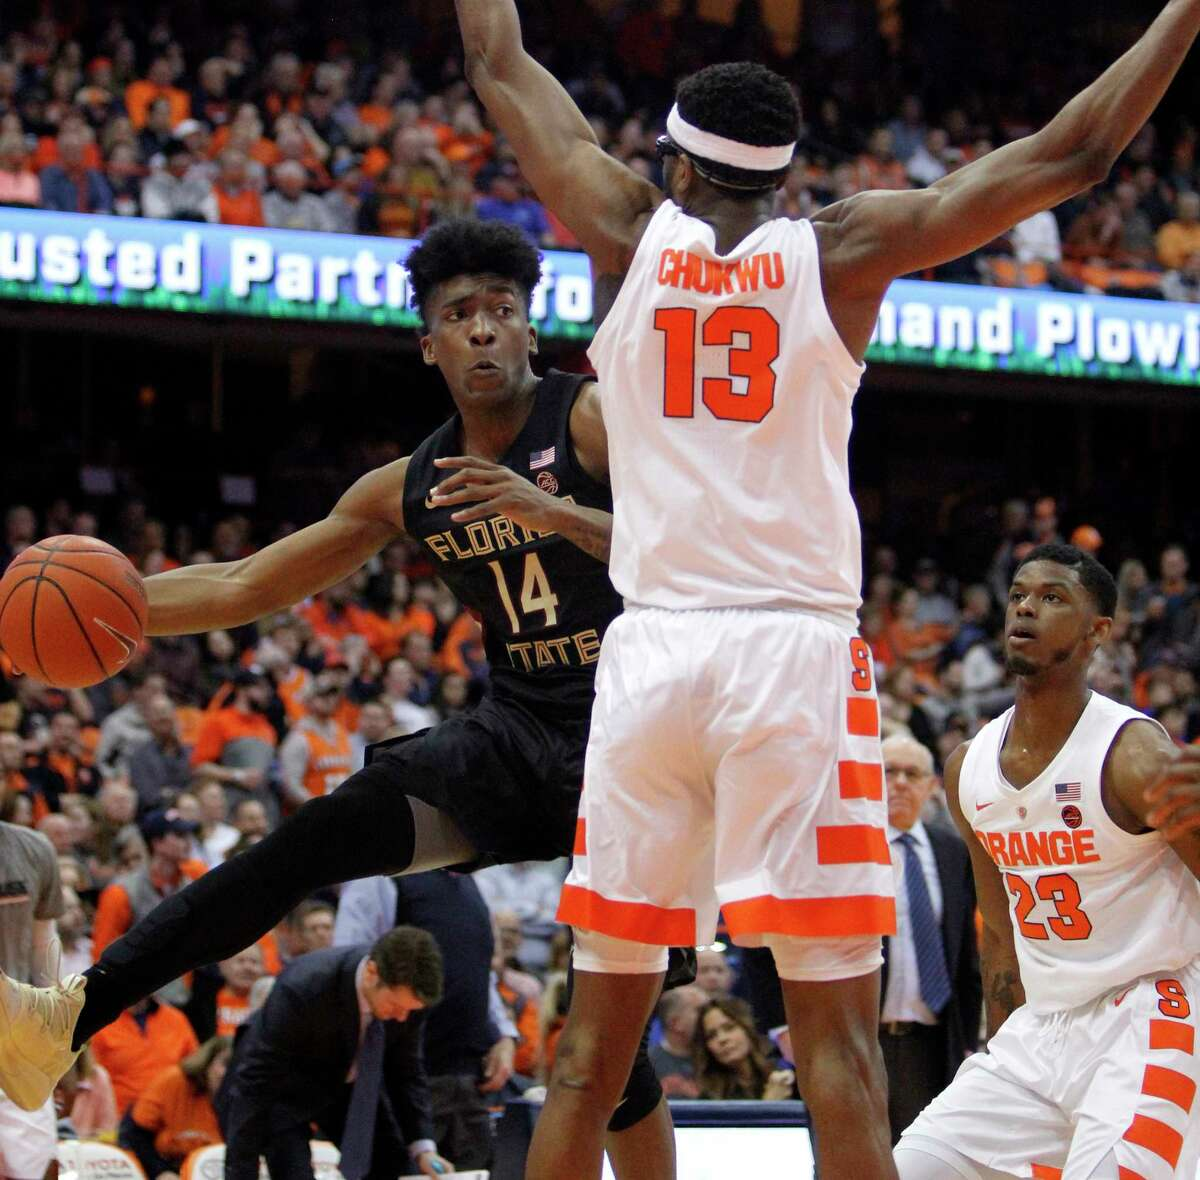 Florida State's Terance Mann, left, passes around Syracuse's Paschal Chukwu, right, during the first half of an NCAA college basketball game in Syracuse, N.Y., Tuesday, Feb. 5, 2019. (AP Photo/Nick Lisi)